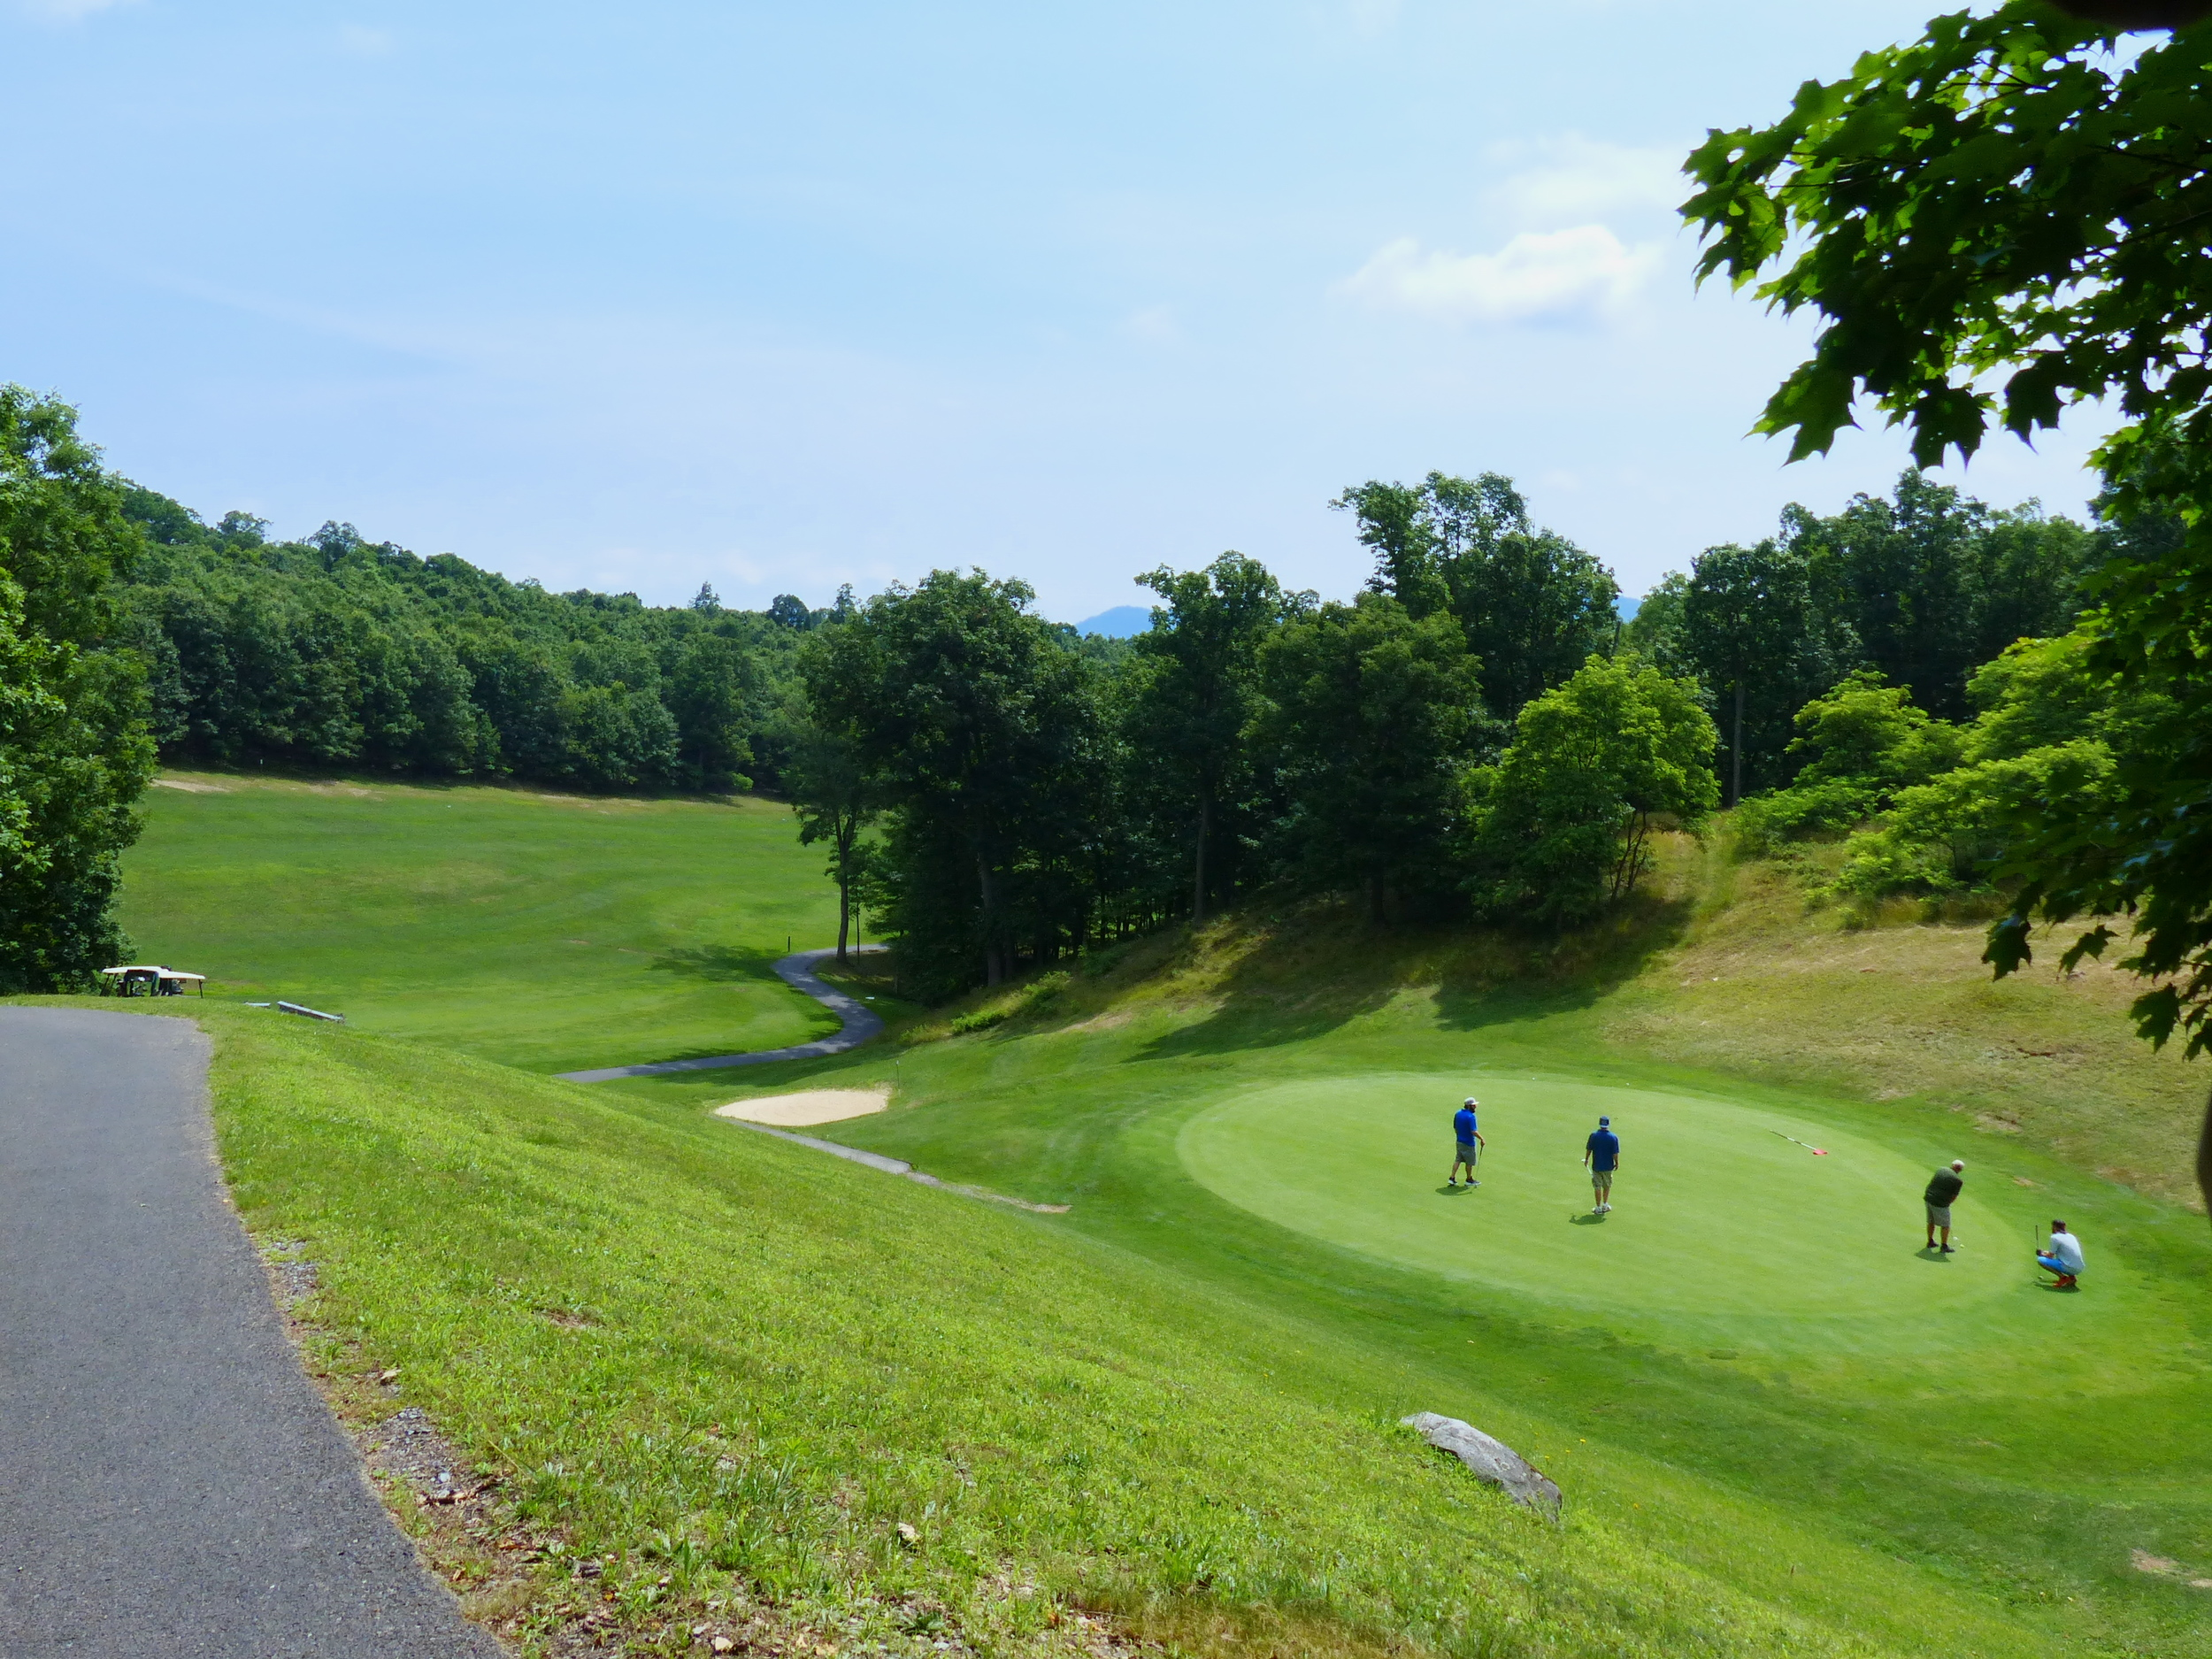 Fore-Sisters-Golf-Course-Rawlings-Teena-Bowers-Photography-1P1210438.jpg